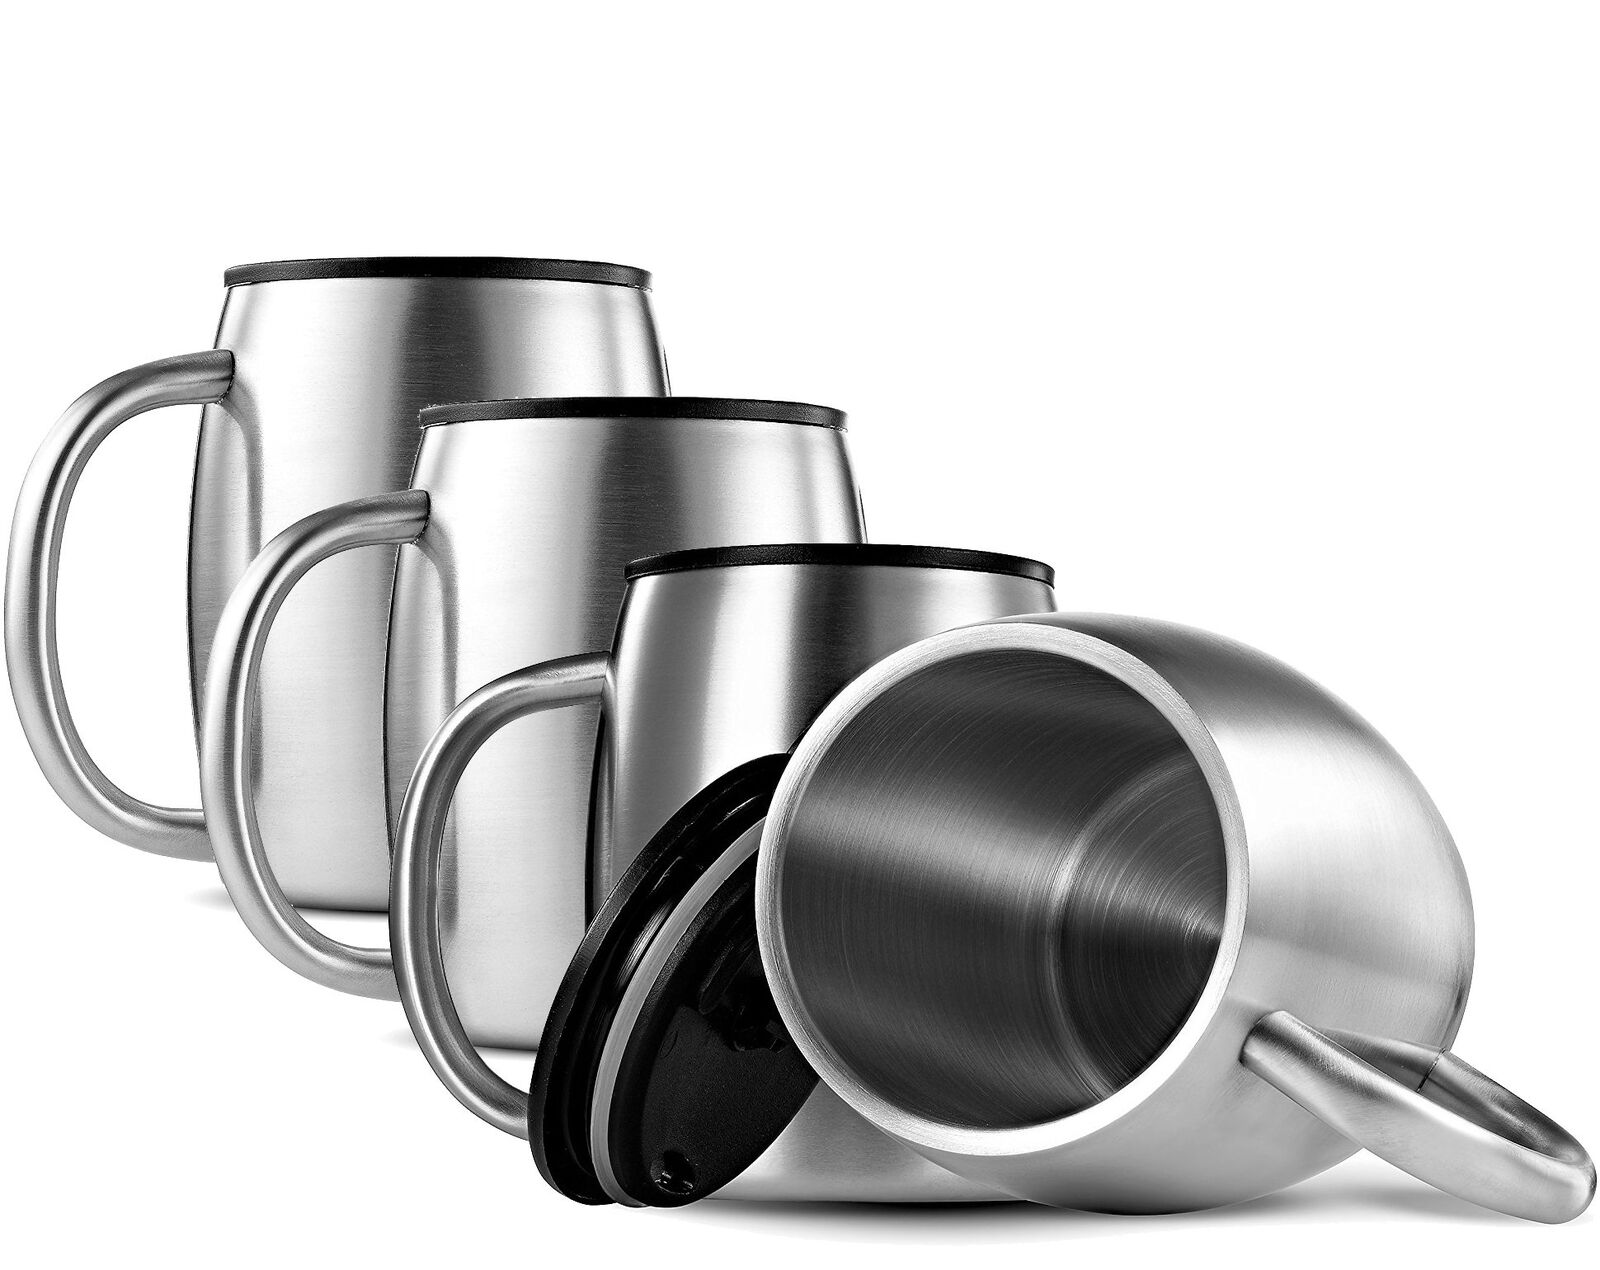 FineDine Double Wall 18 8 Stainless Steel Coffee Mugs with Spill Resistant Lids